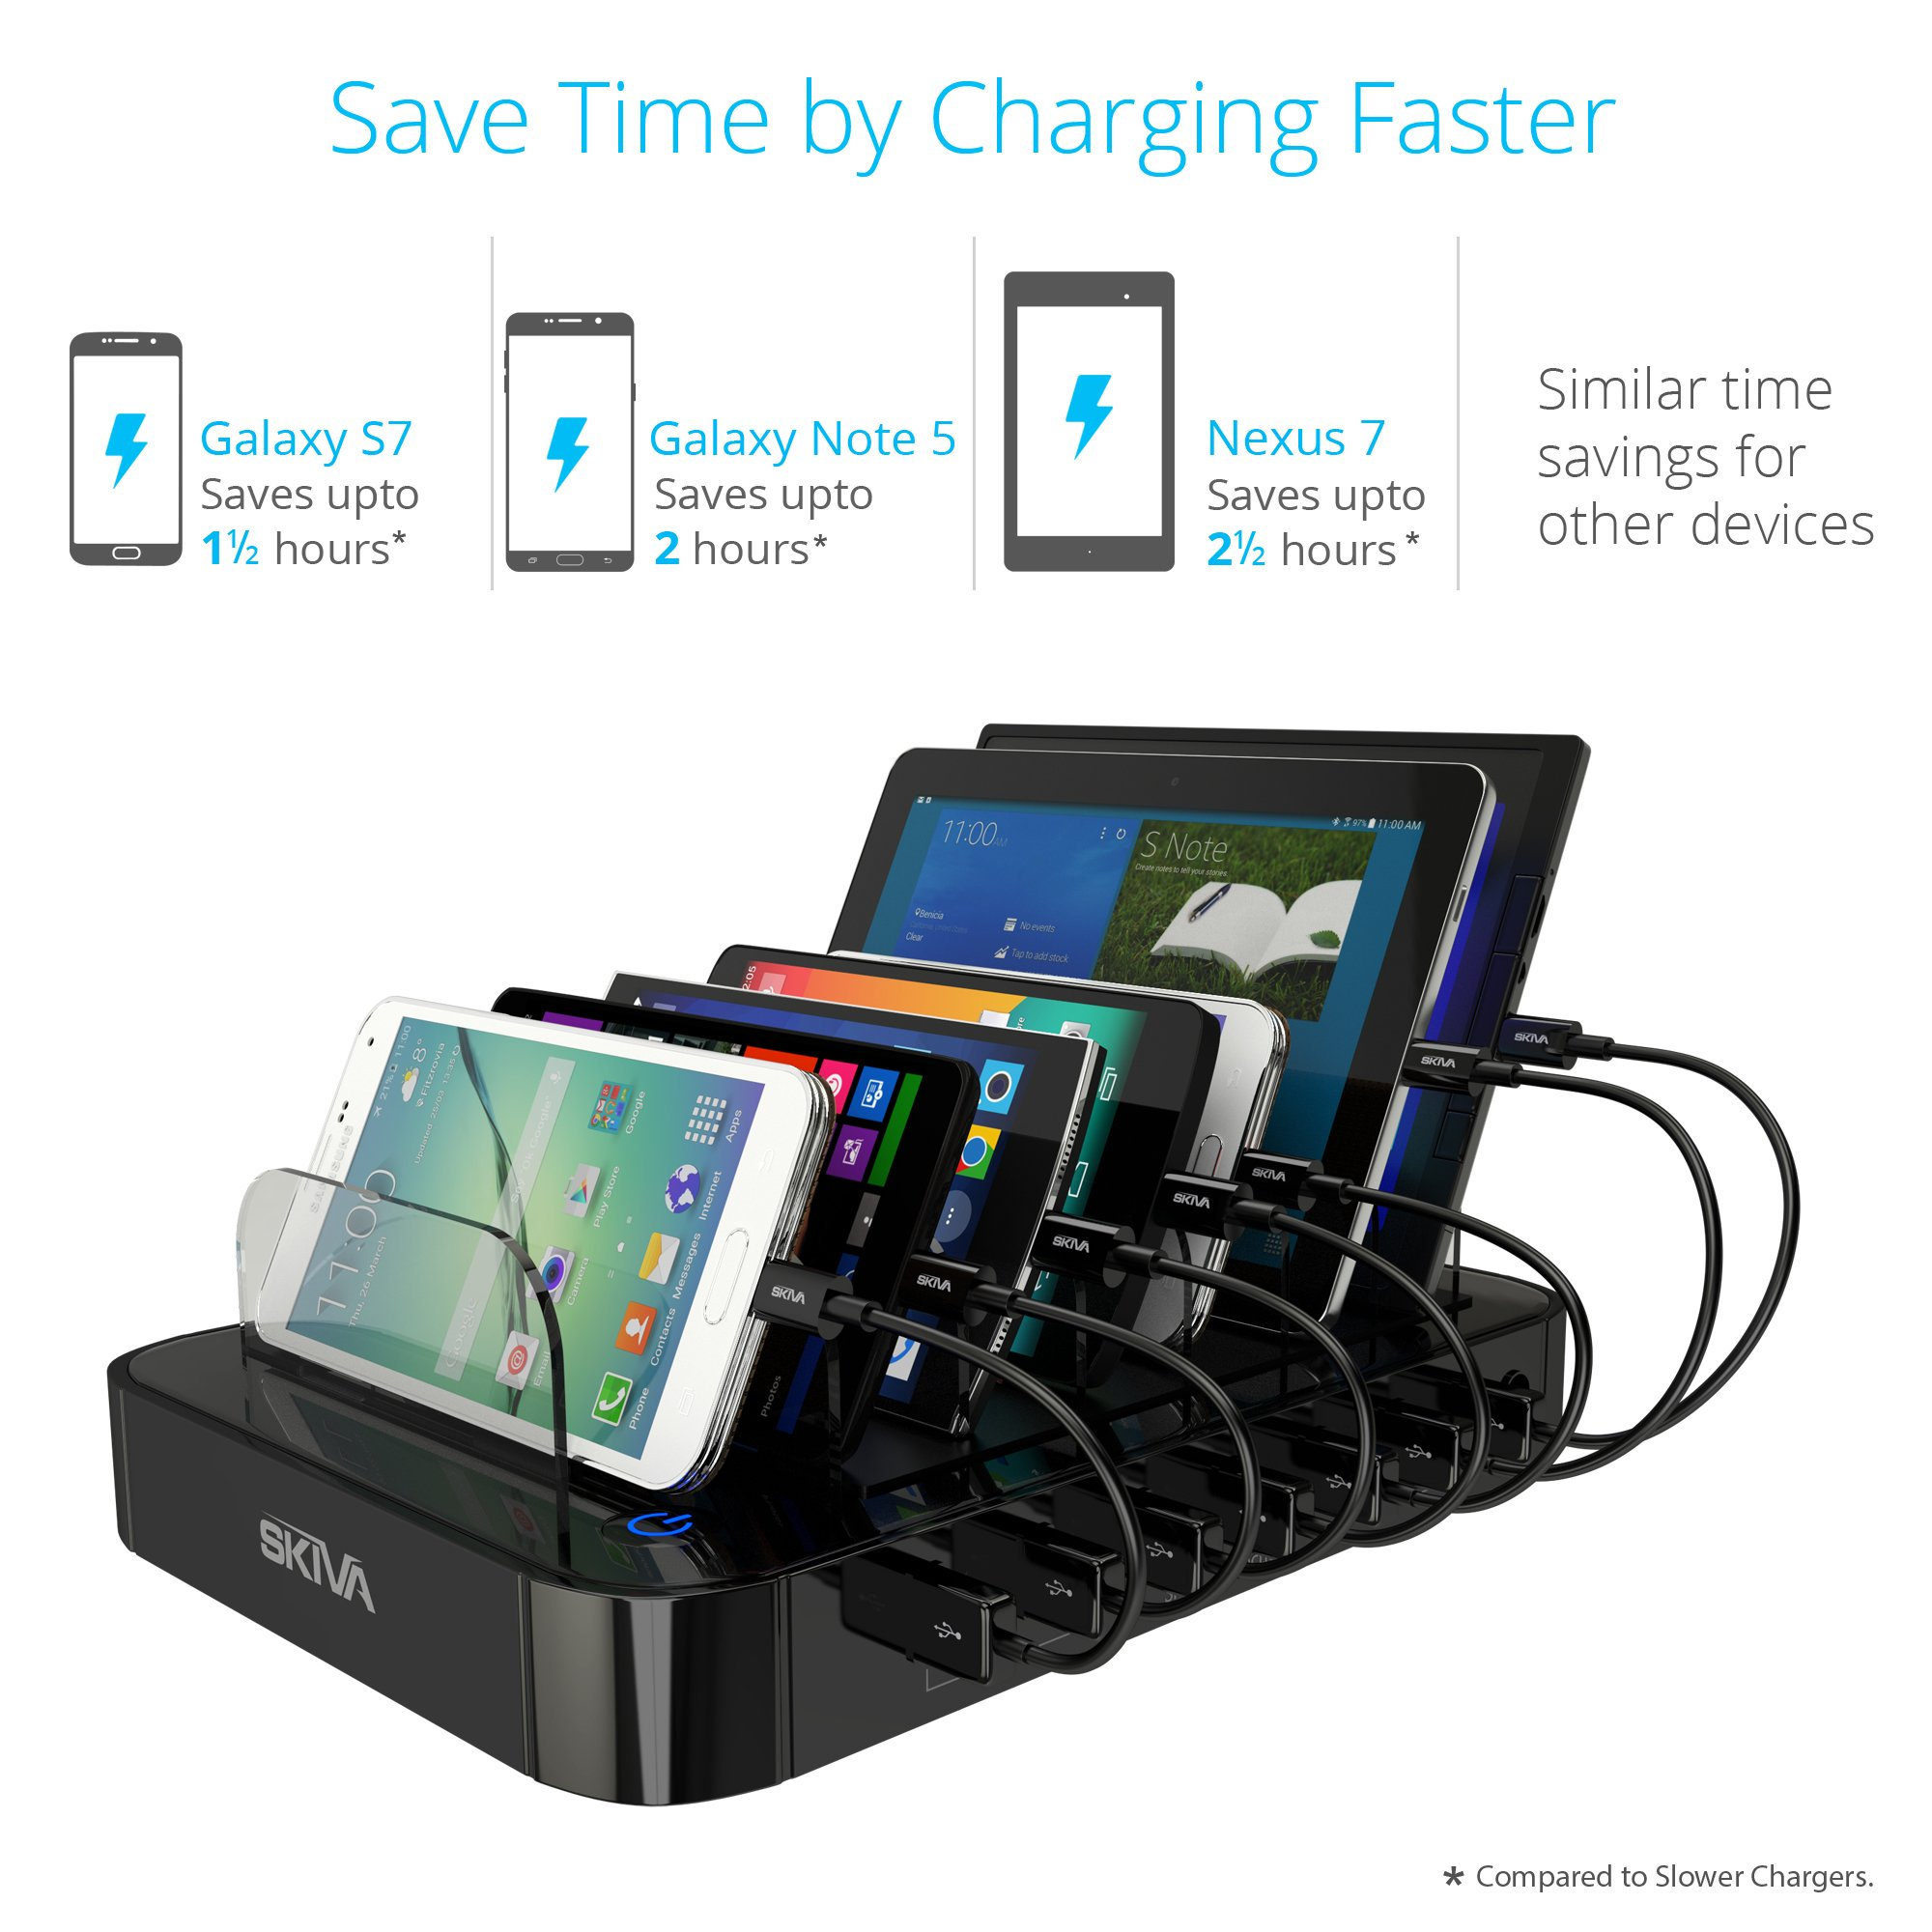 [2-Pack] Skiva StandCharger 7-Port 84W/16.8A Desktop USB Fast Charging Station Dock with '28 units of Short (0.5ft) microUSB Cables' for Samsung, Smart Phones, Tablets, Wearables & more [Model:AC127] by SKIVA (Image #6)